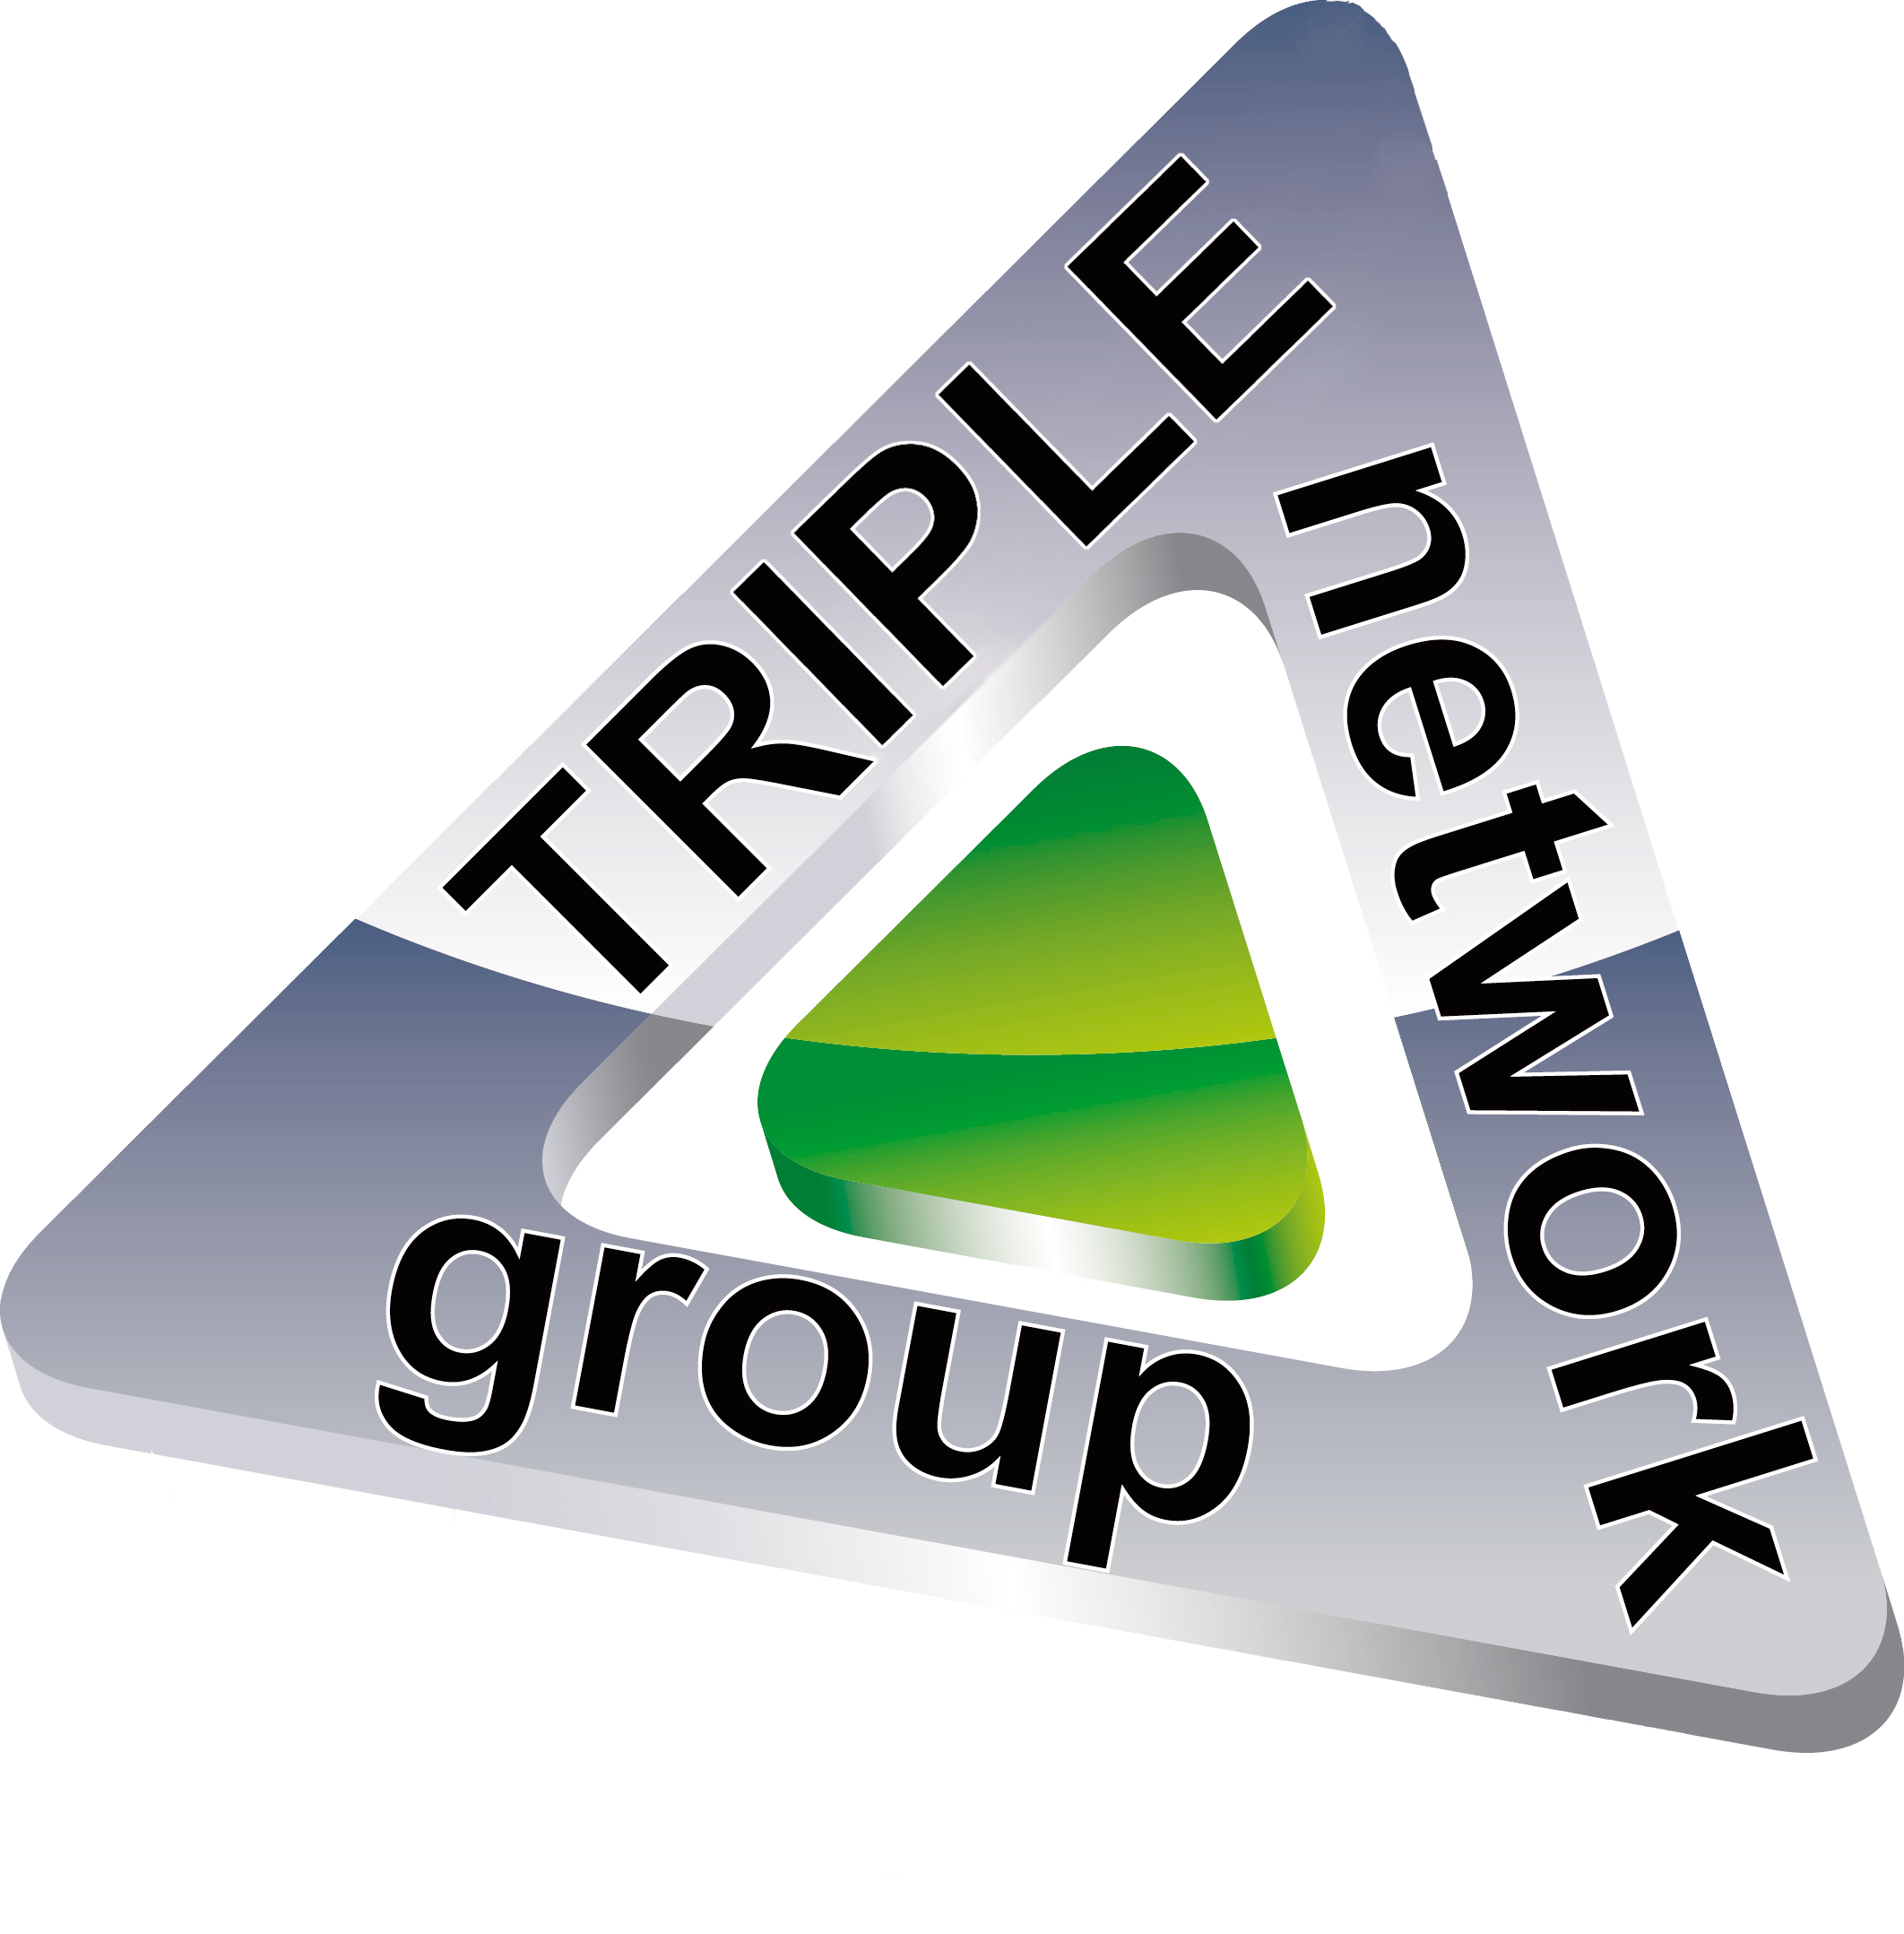 TRIPLE network group